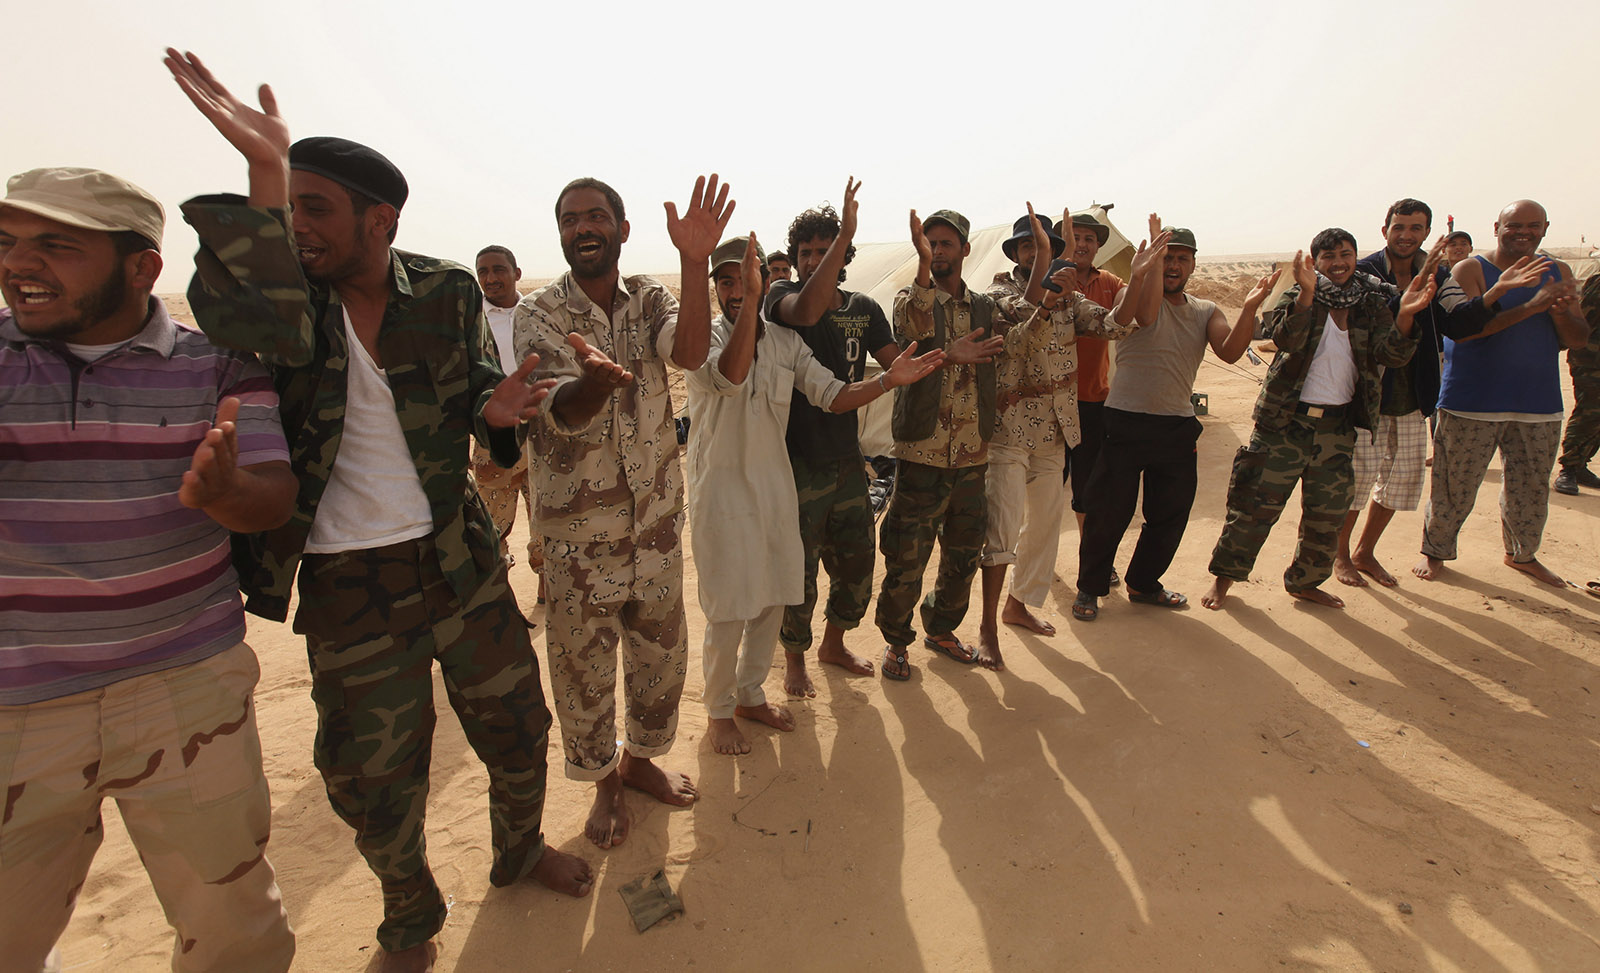 Rebel fighters celebrate on the front line, after hearing news that the ICC had issued an arrest warrant for Libyan leader Gaddafi